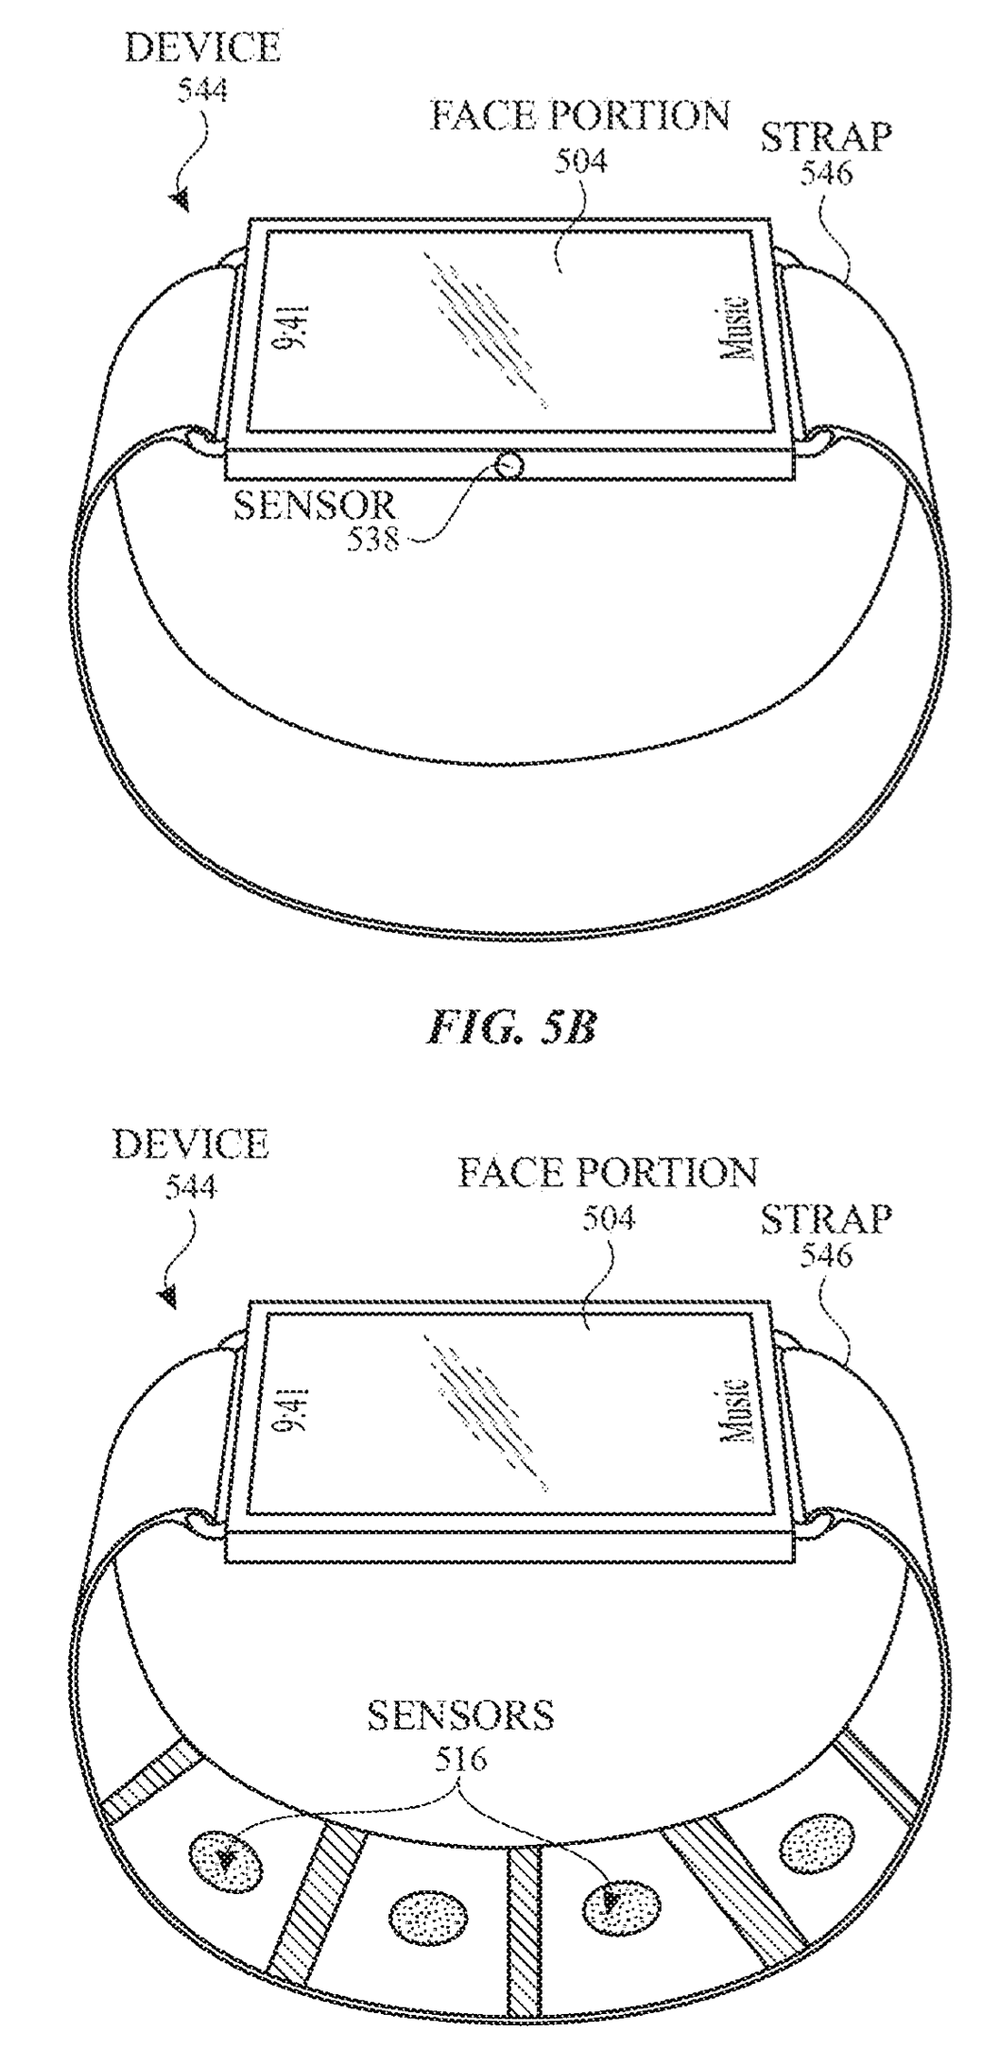 Future Apple Watches could sport vein scanning technology